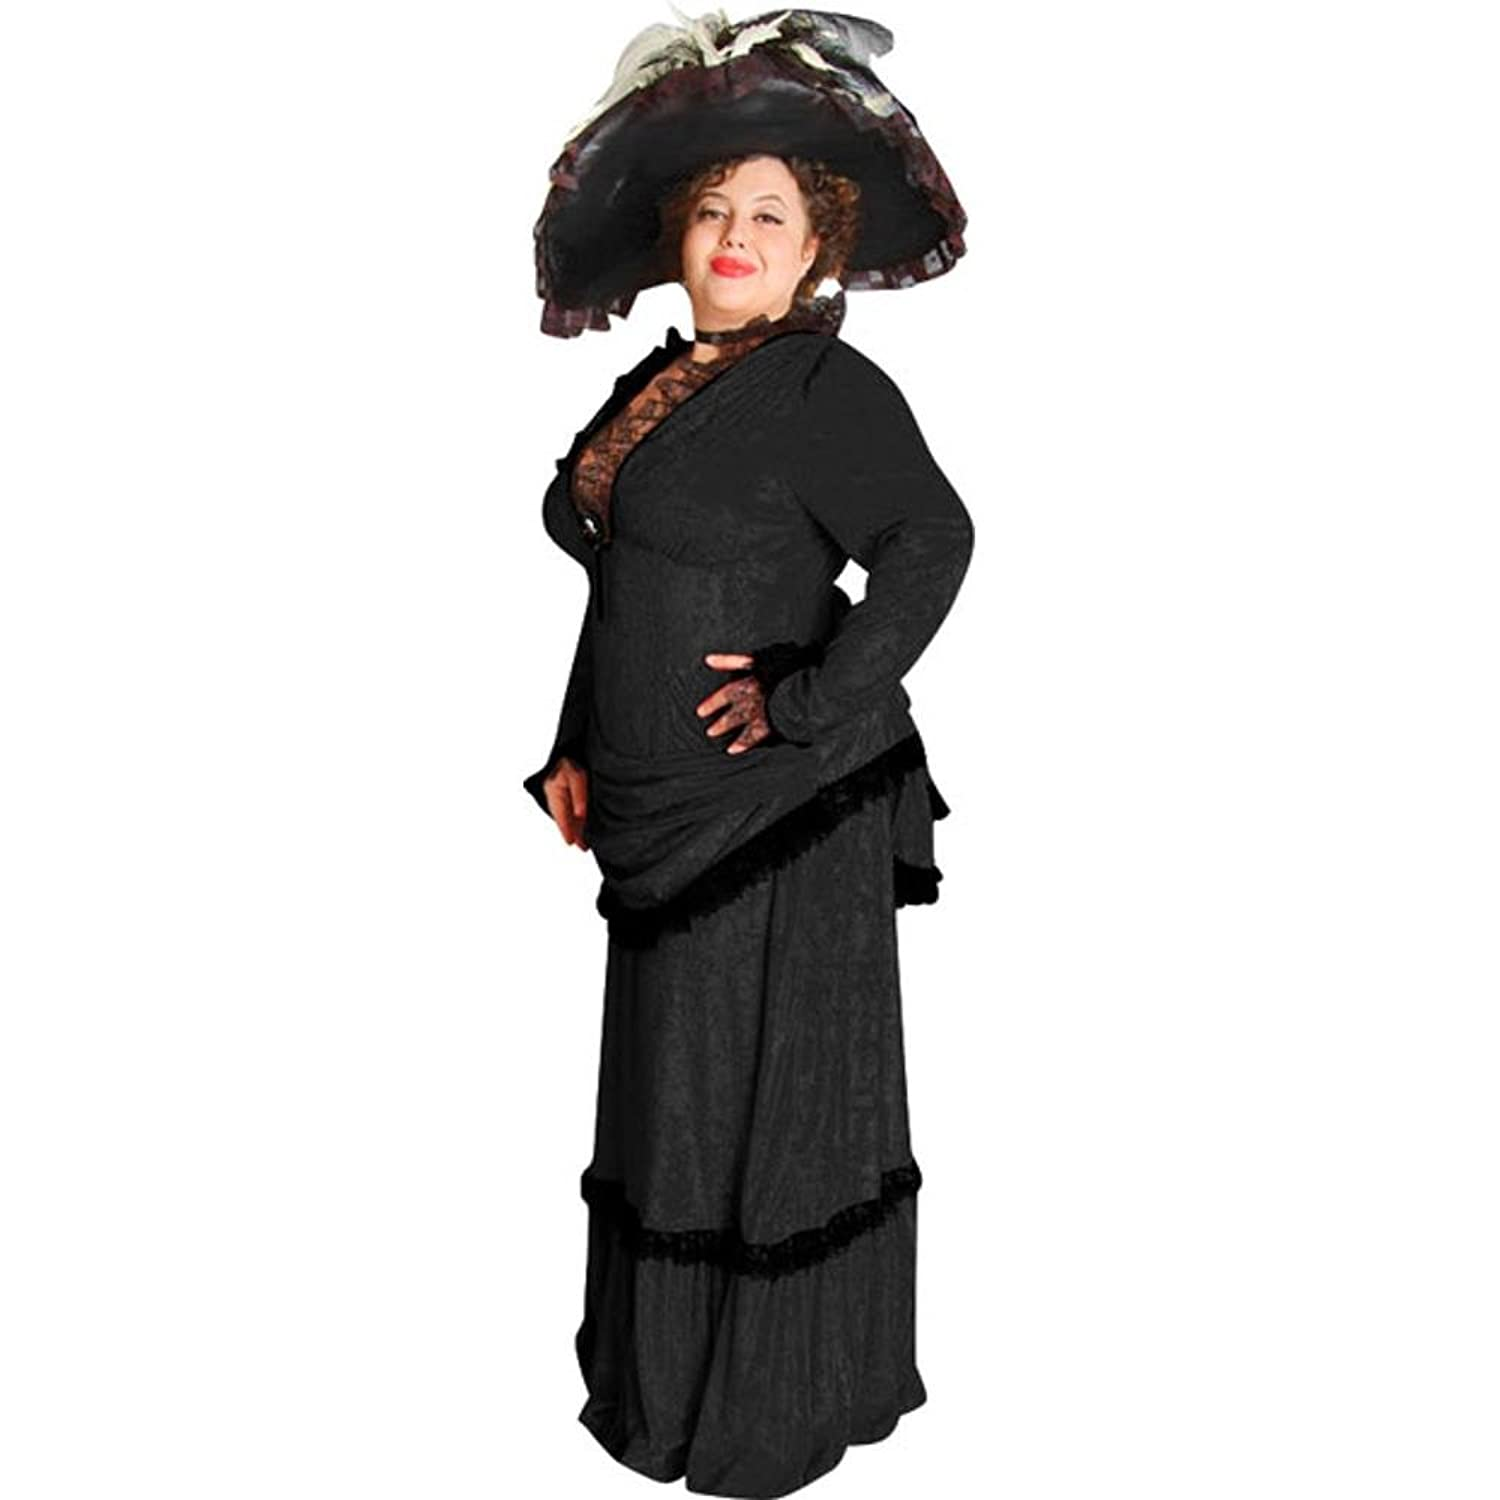 Victorian Costume Dresses & Skirts for Sale Womens Plus Size Victorian Black Theater Dress $259.99 AT vintagedancer.com